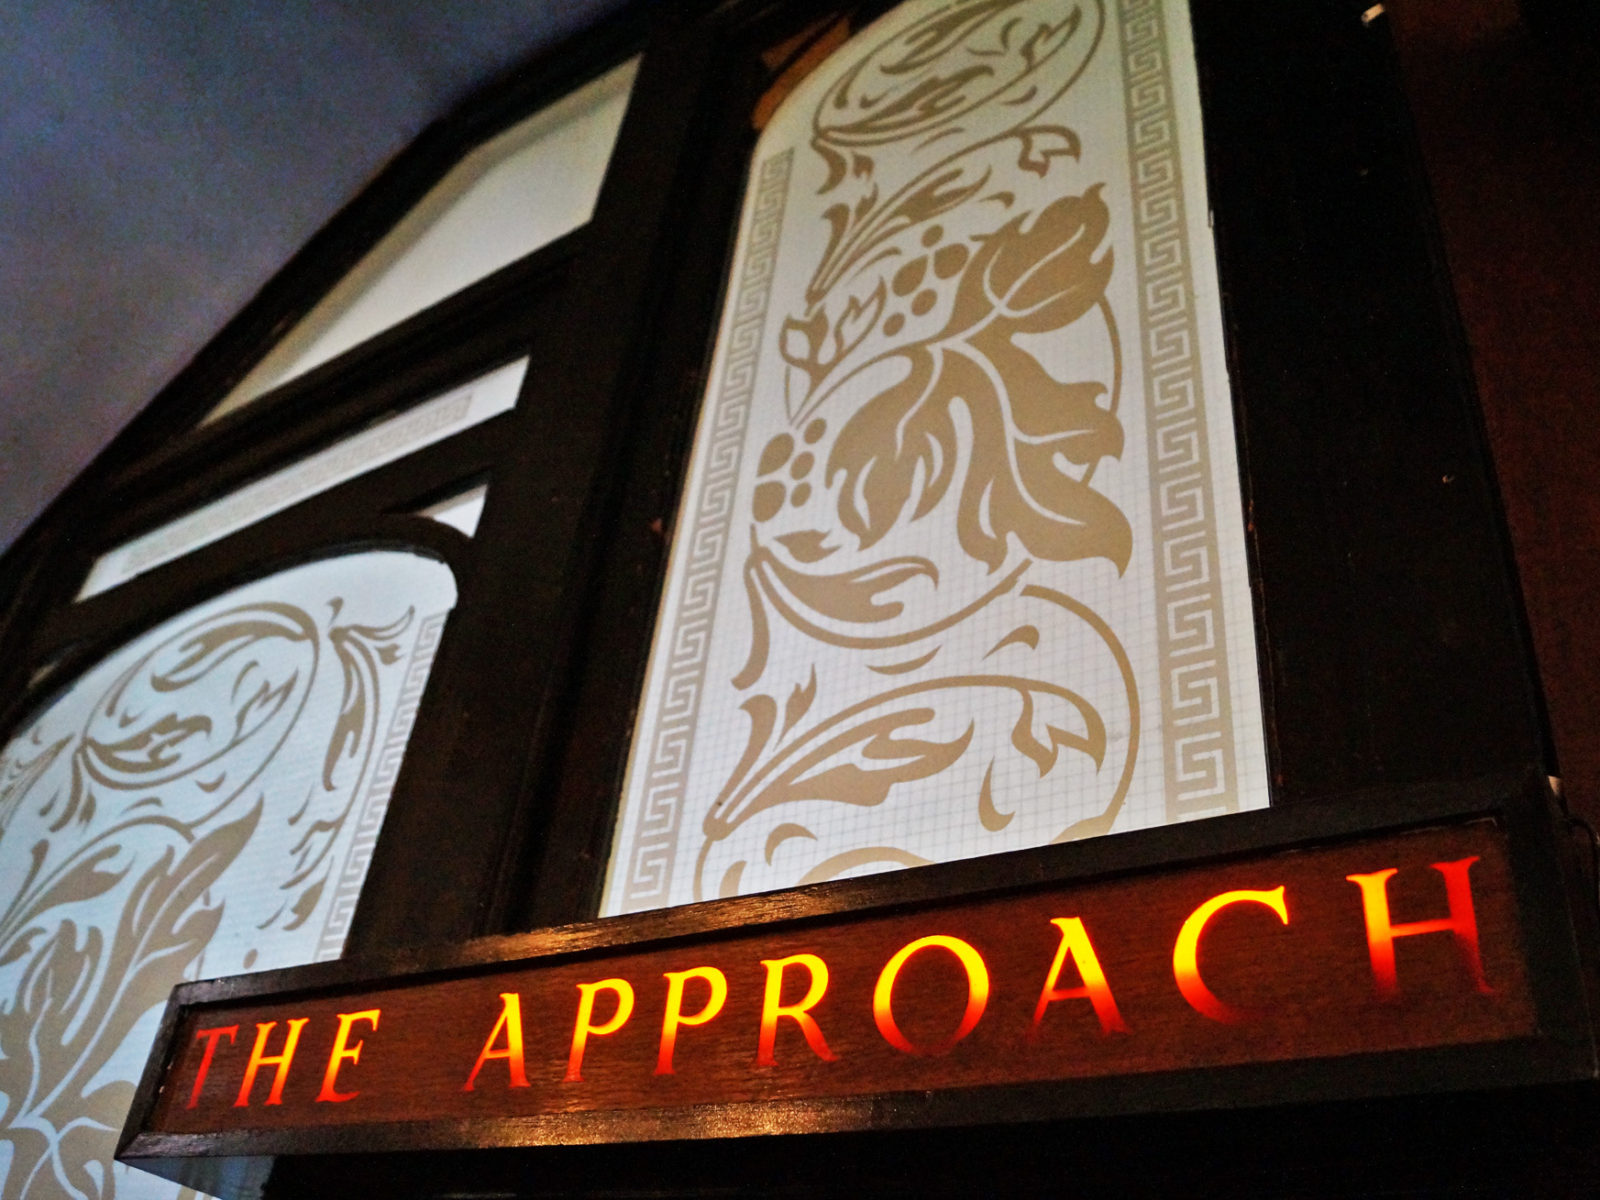 The Approach Tavern sign and decorative glass